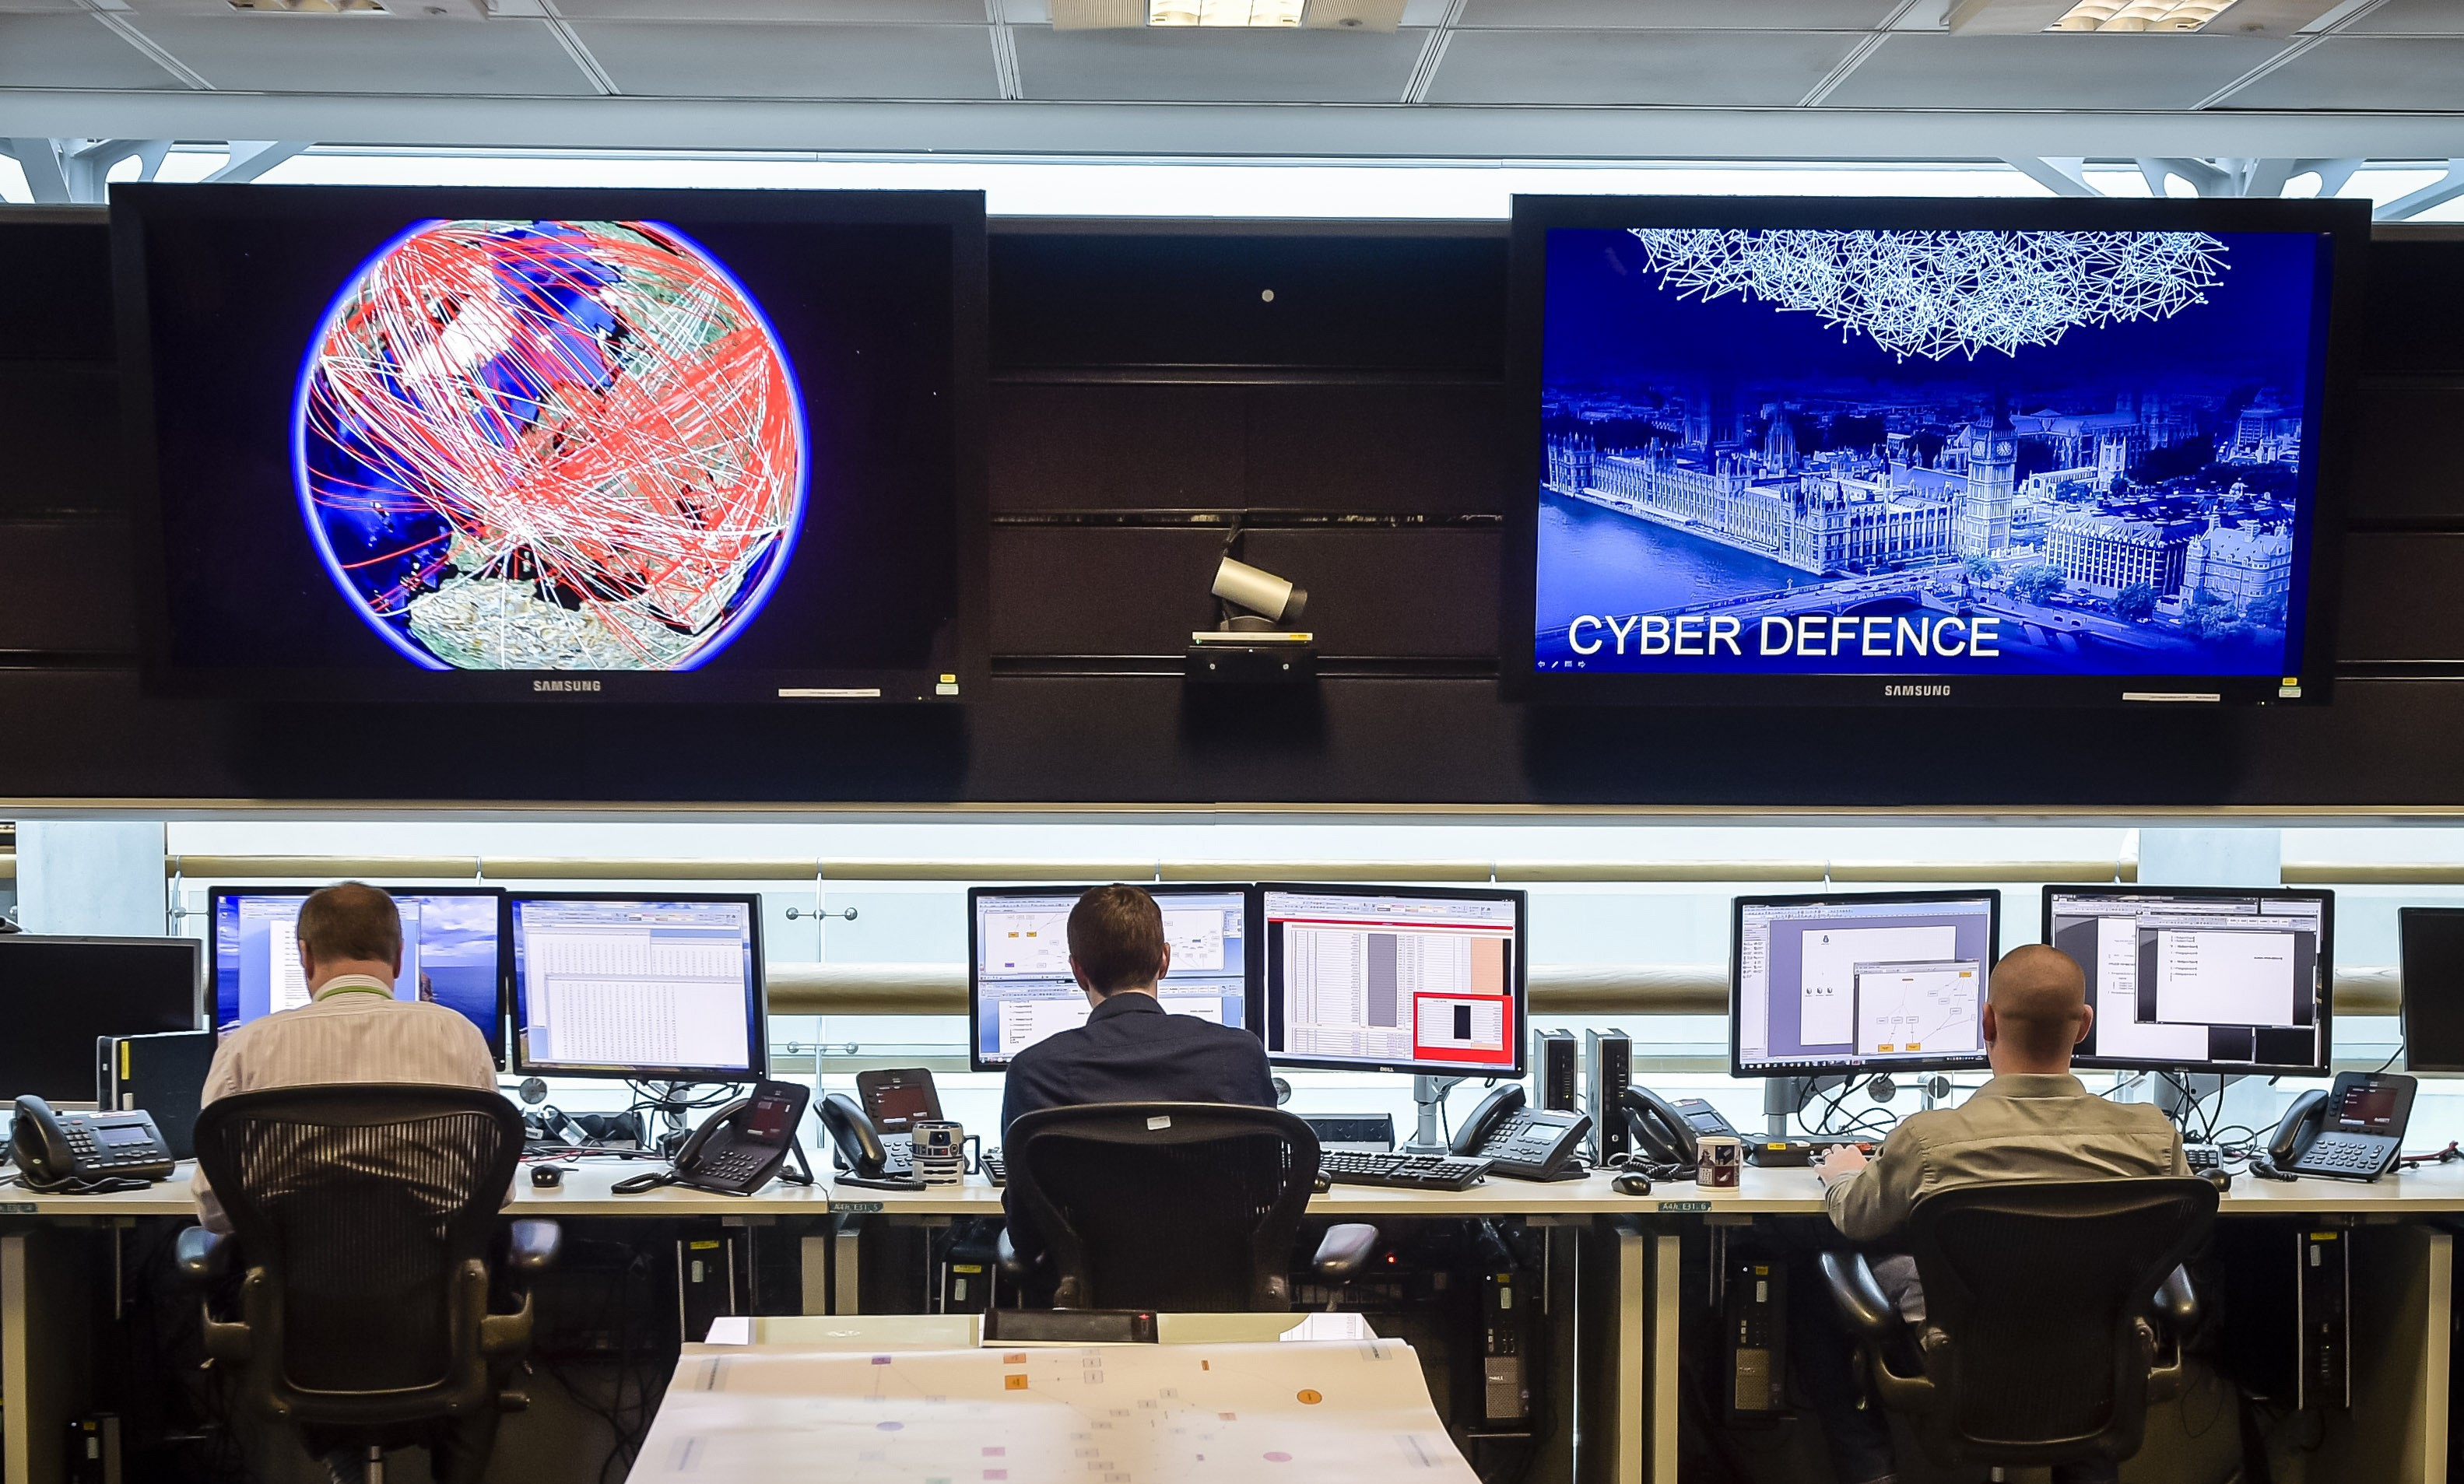 People sit at computers in the 24 hour Operations Room inside GCHQ, Cheltenham in Cheltenham, November 17, 2015. REUTERS/Ben Birchall/Pool - RTS7JNI